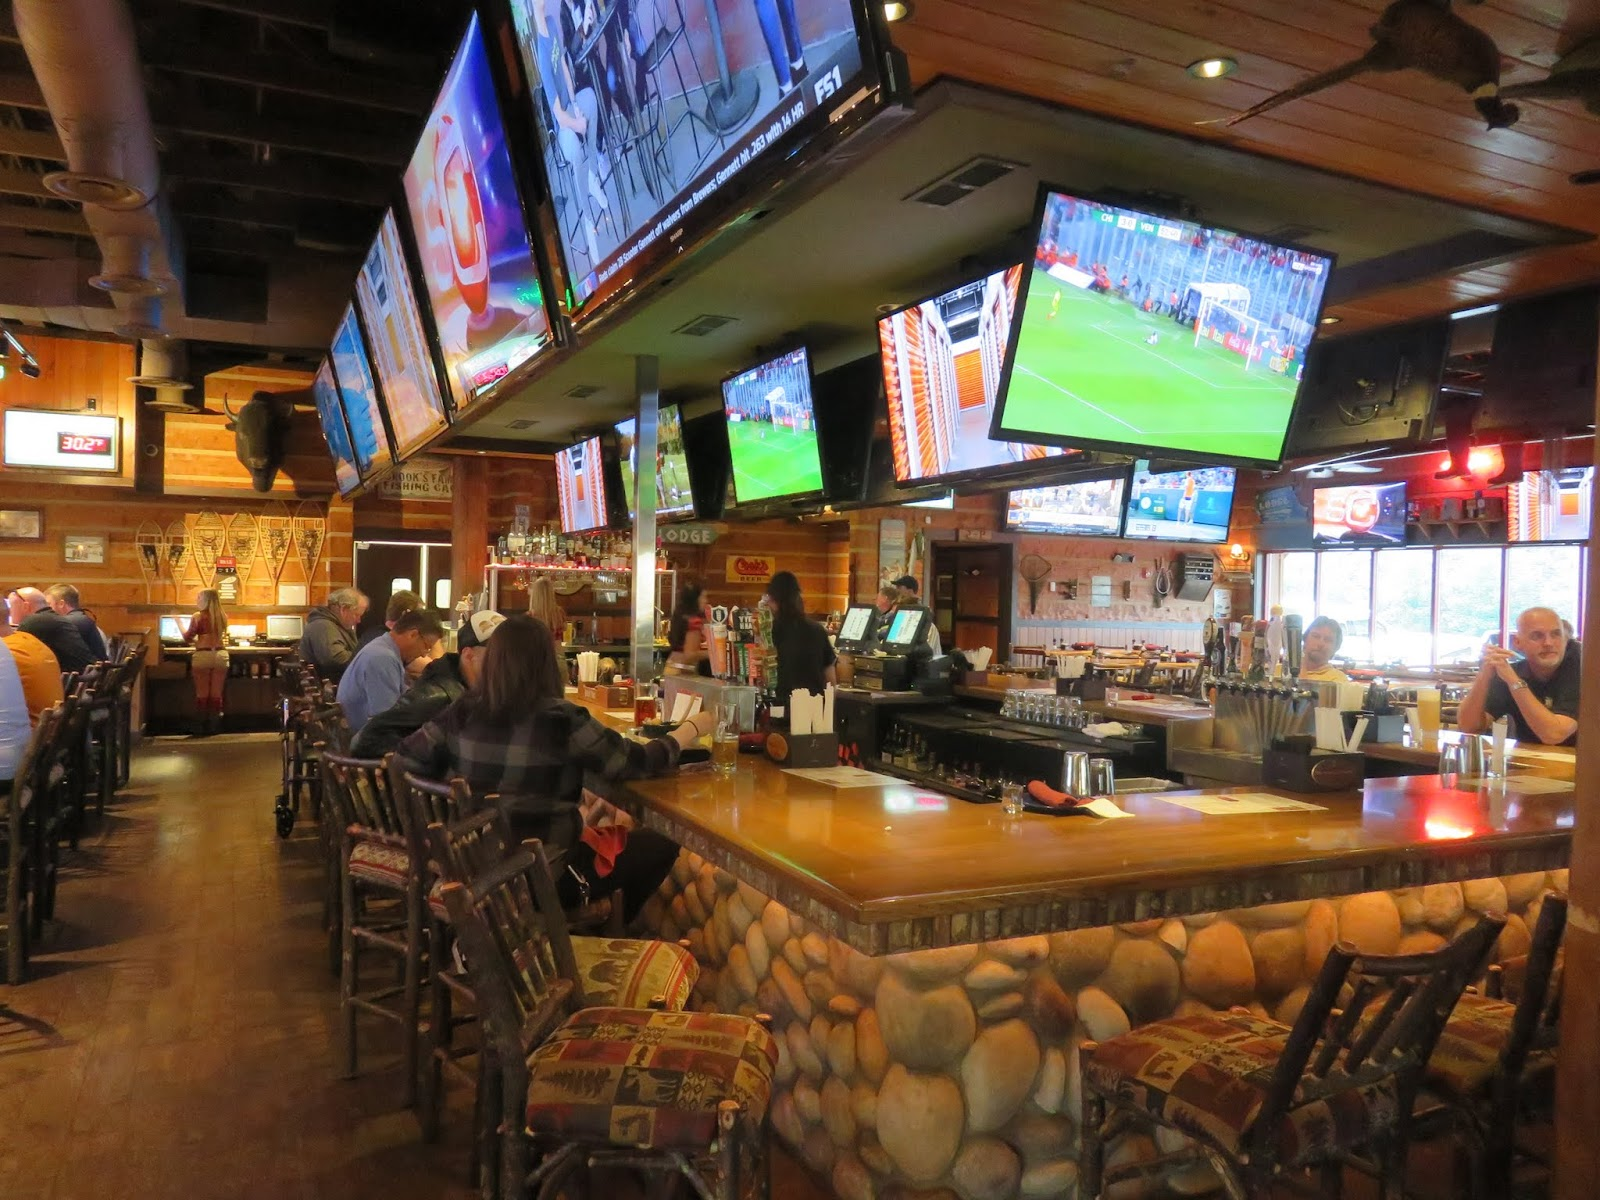 A Huge Bar Dominates The Center Of This Restaurant Note Tv S Is Definitely Sports On Steroids